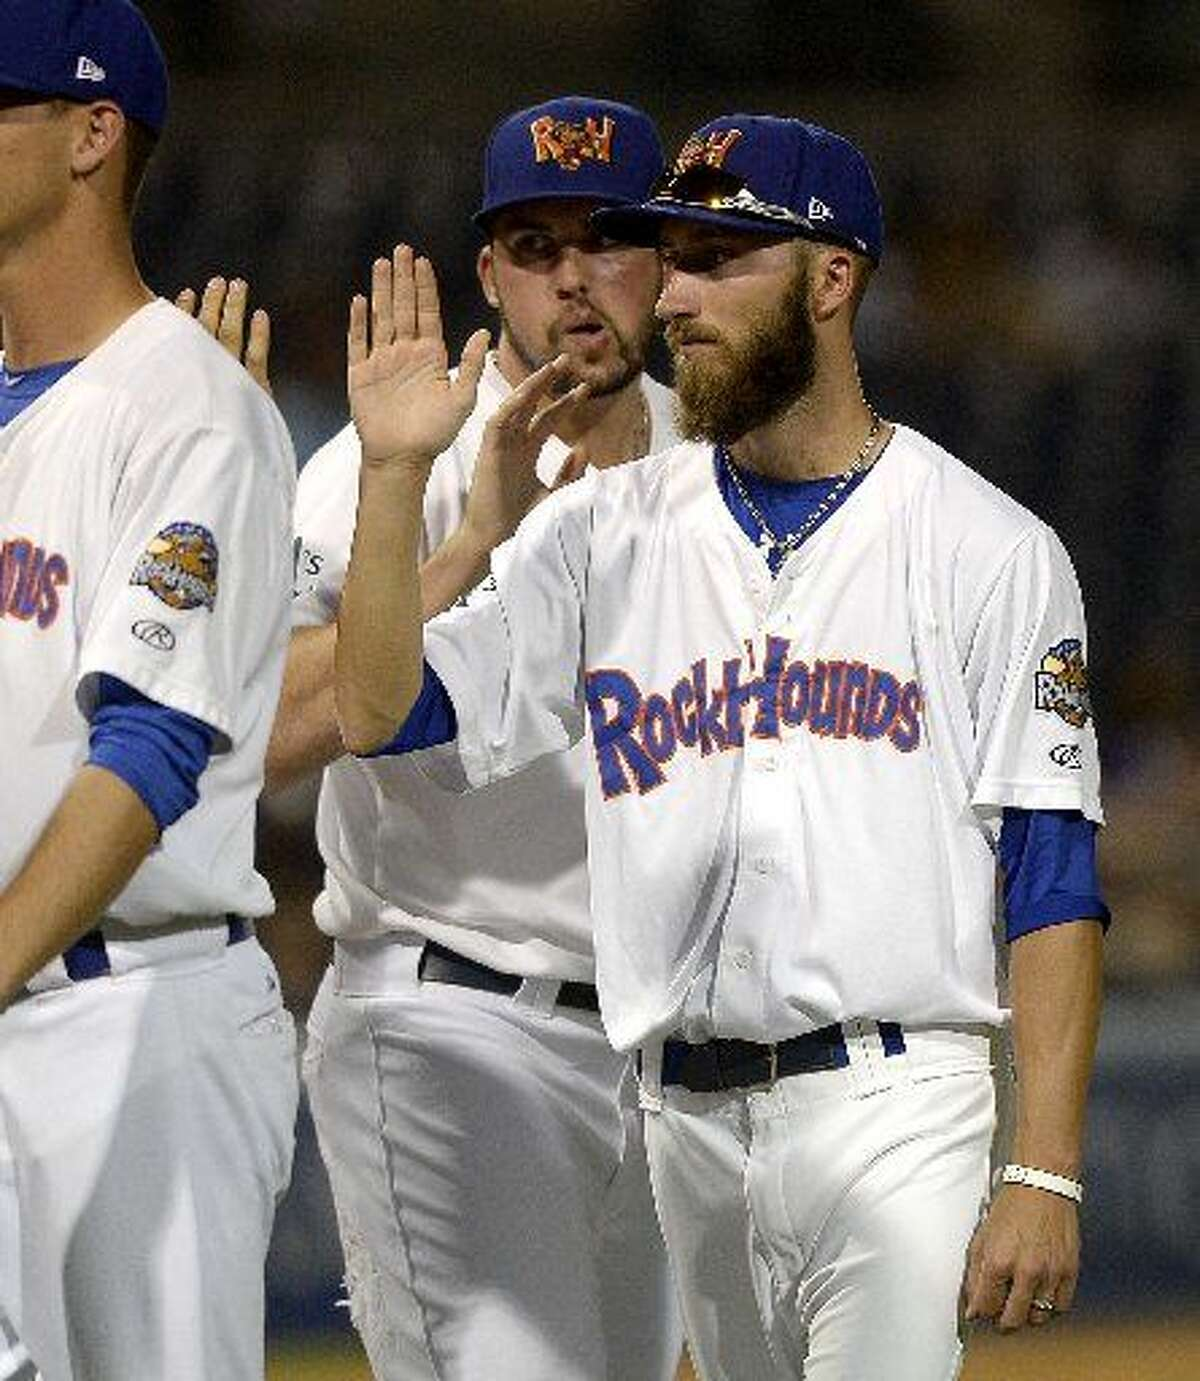 Rockhounds pitcher Dillon Overton high-fives teammates after a win against San Antonio on Thursday, July 23, 2015 at Security Bank Ballpark.